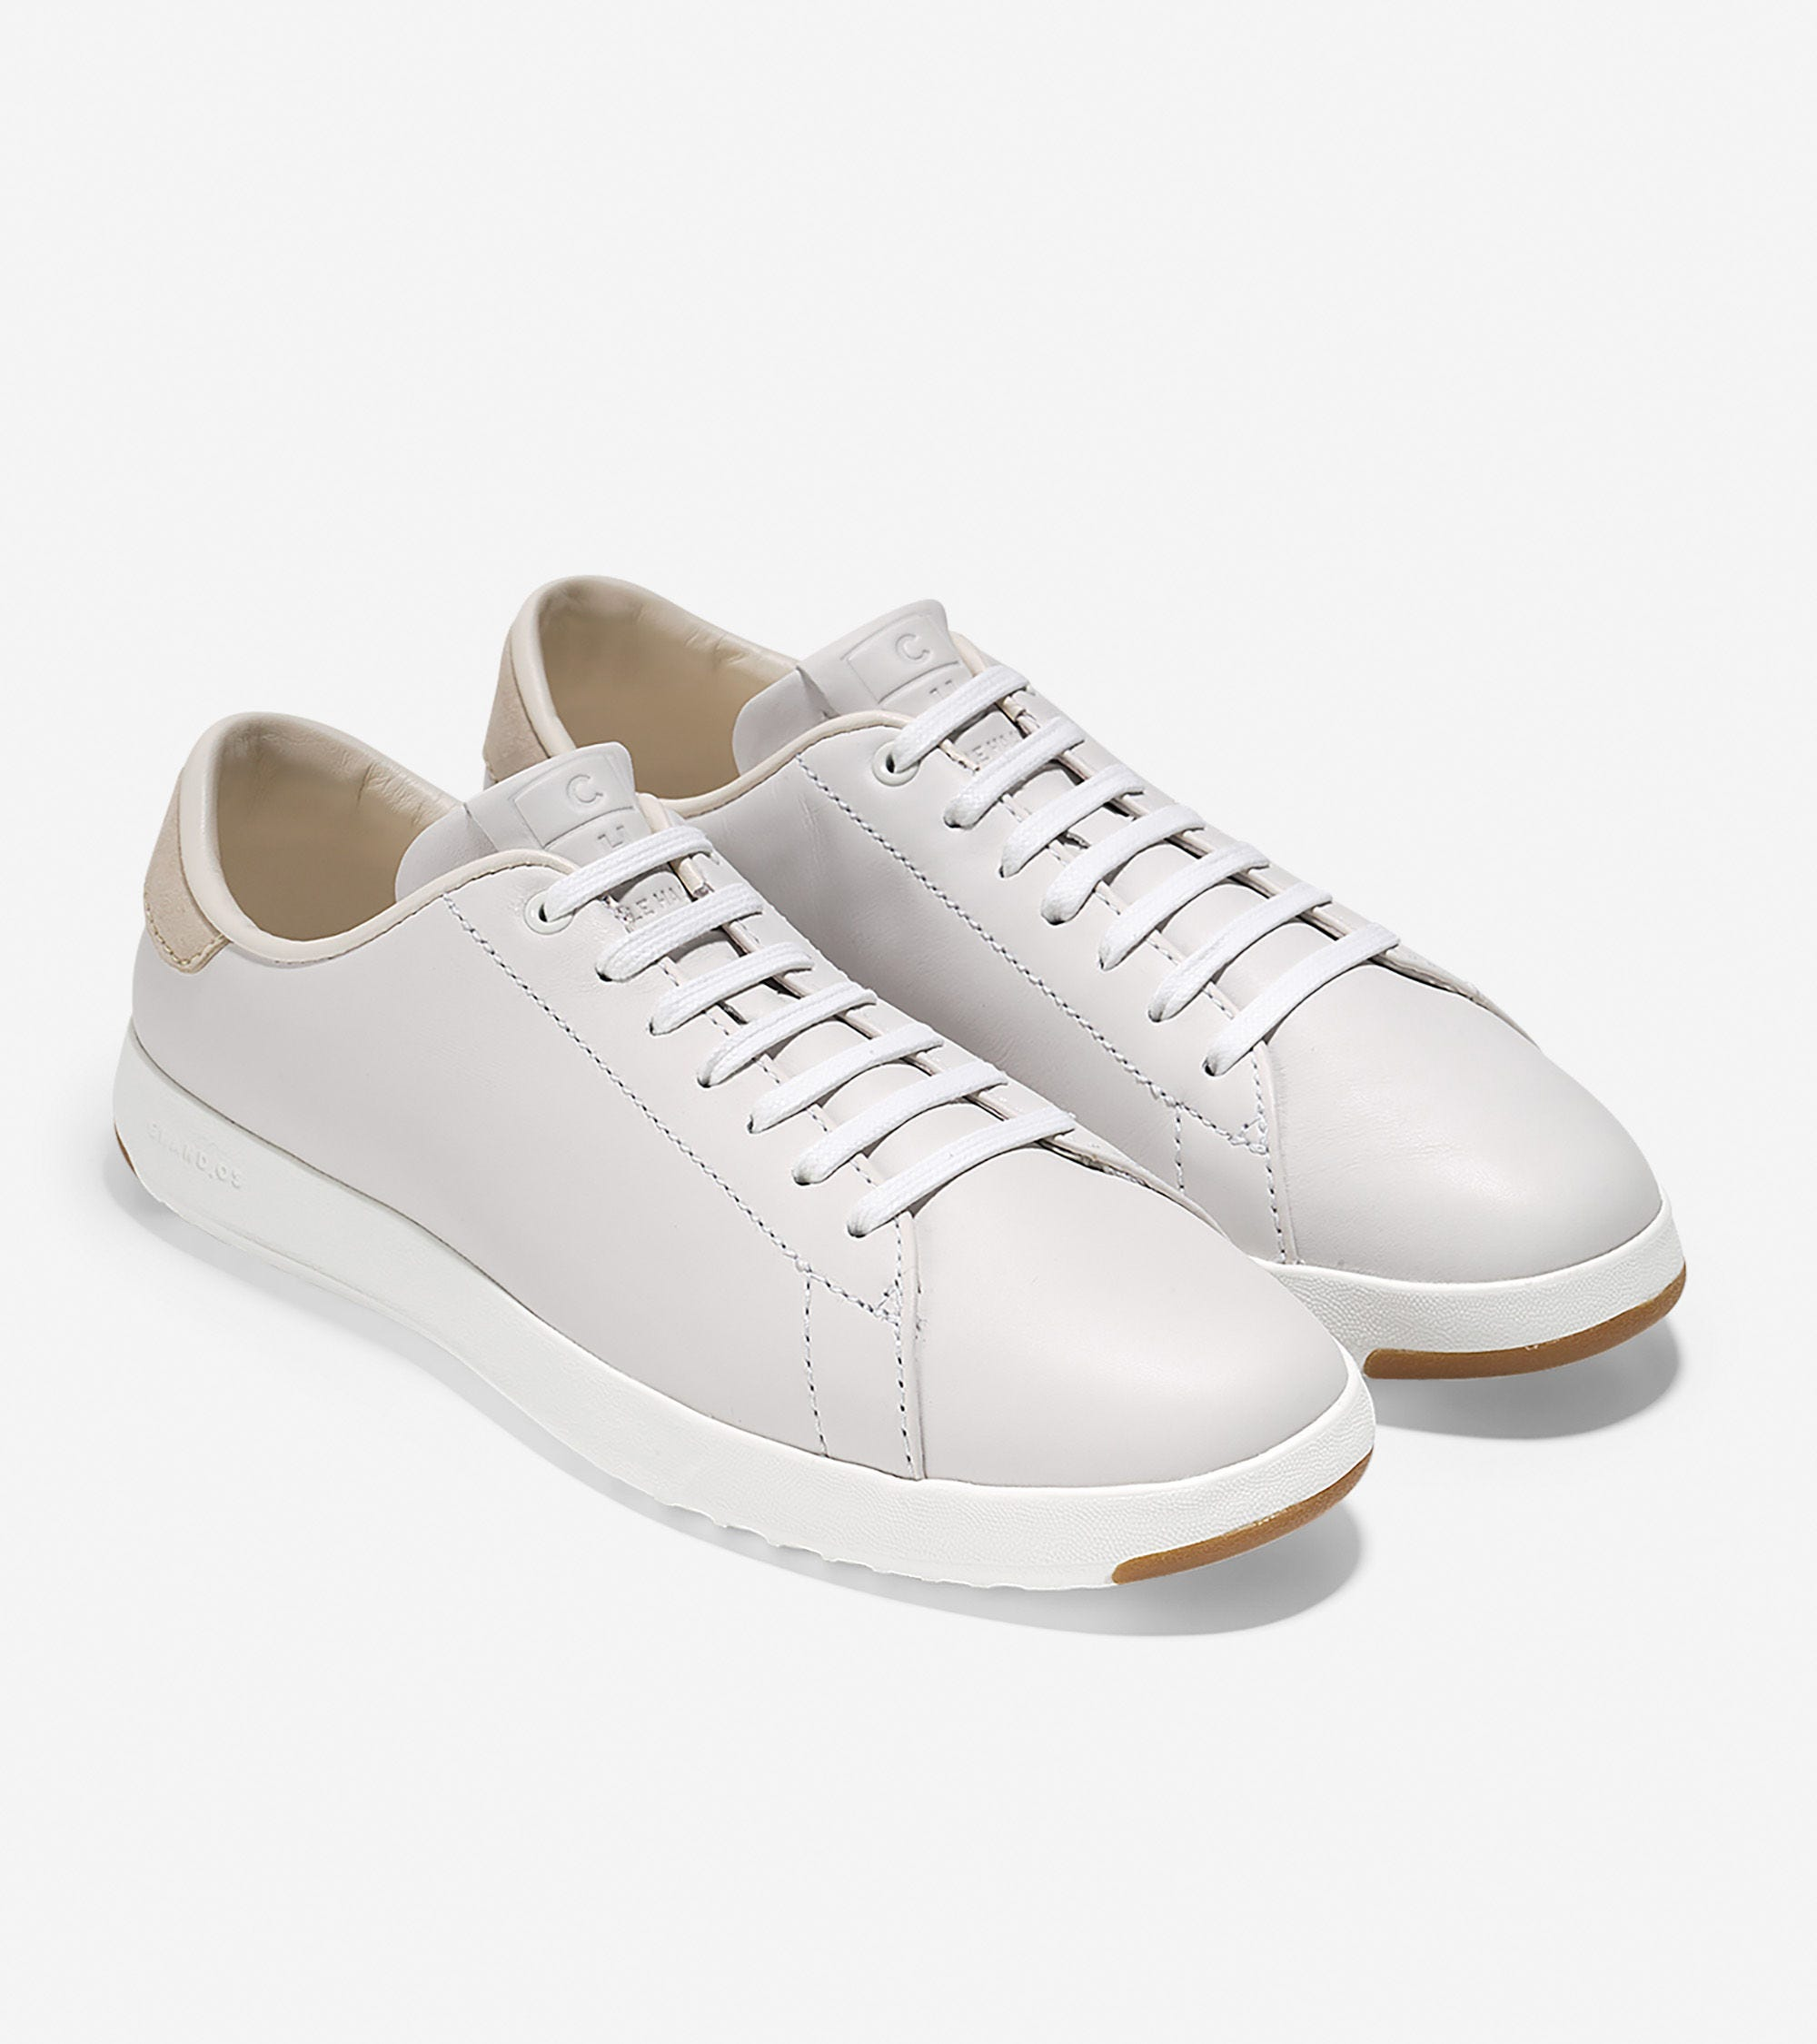 95748e31a720c Best White Sneakers For Women - 2019 Cool New Trends